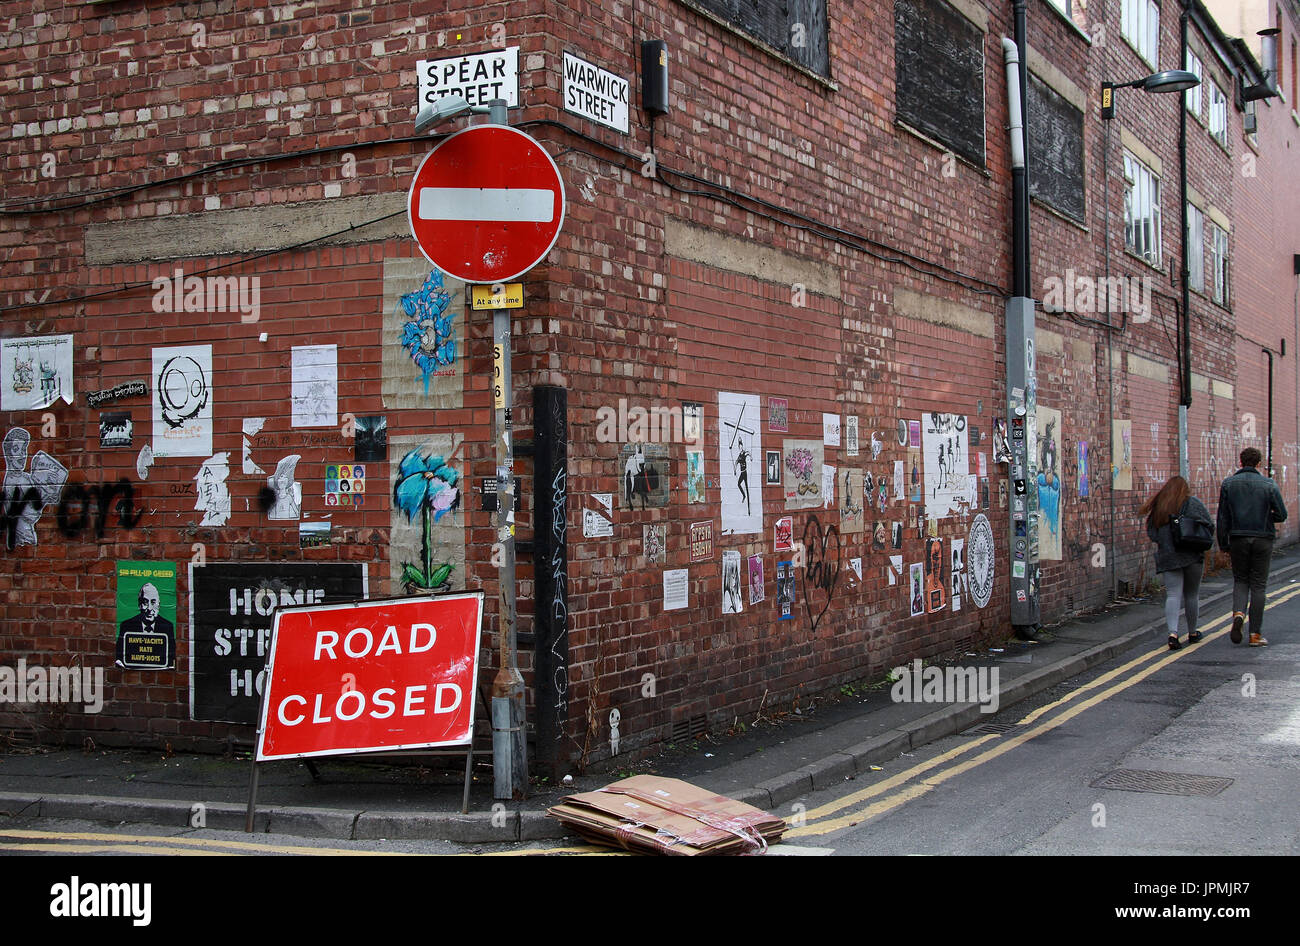 Road closed sign in the Northern Quarter area of Manchester - Stock Image